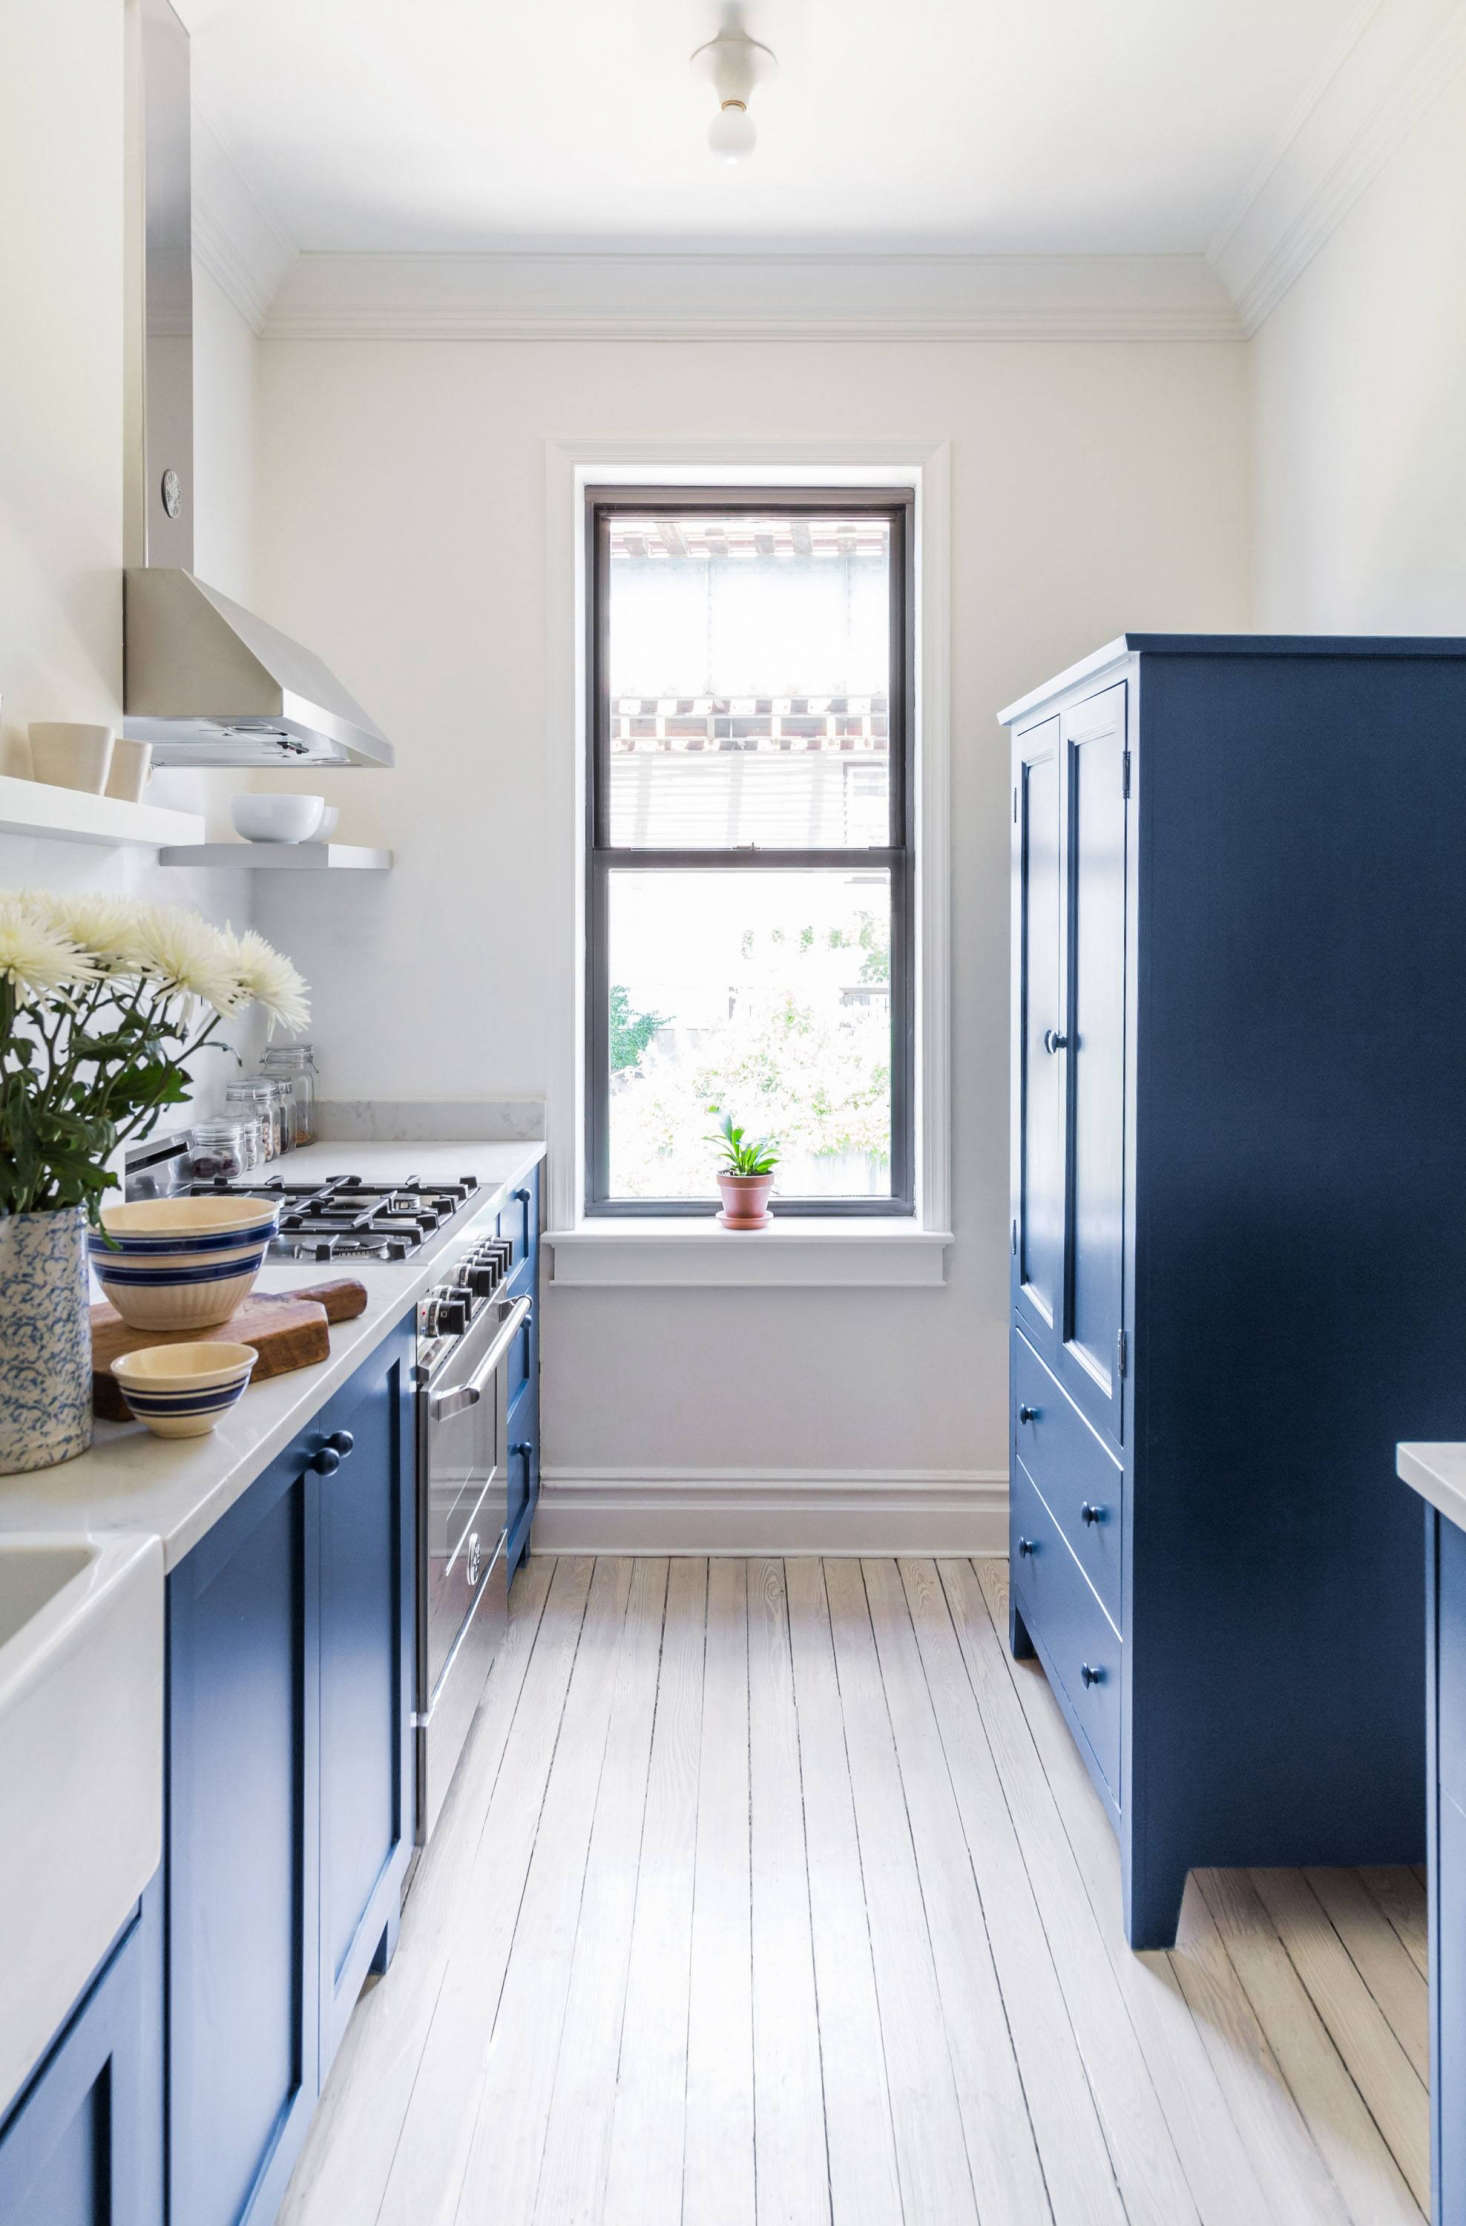 Remodeling 101: 8 Sources for Used Appliances